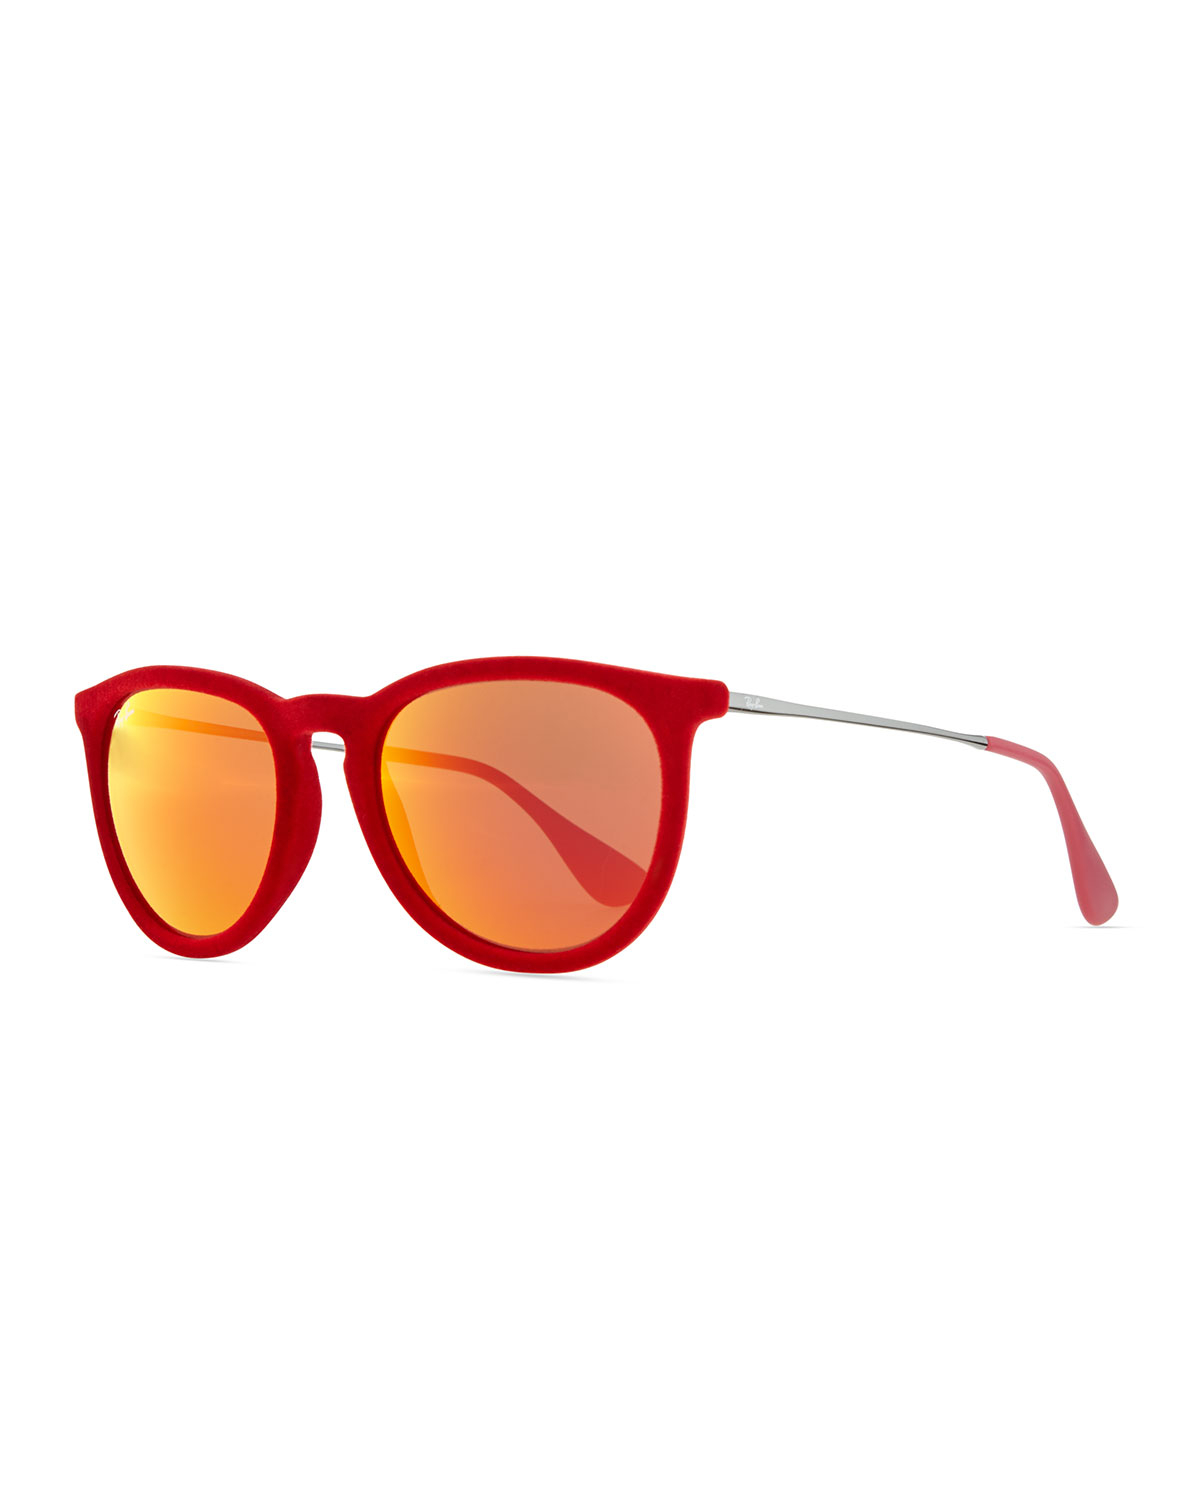 ray ban erika sunglasses red  gallery